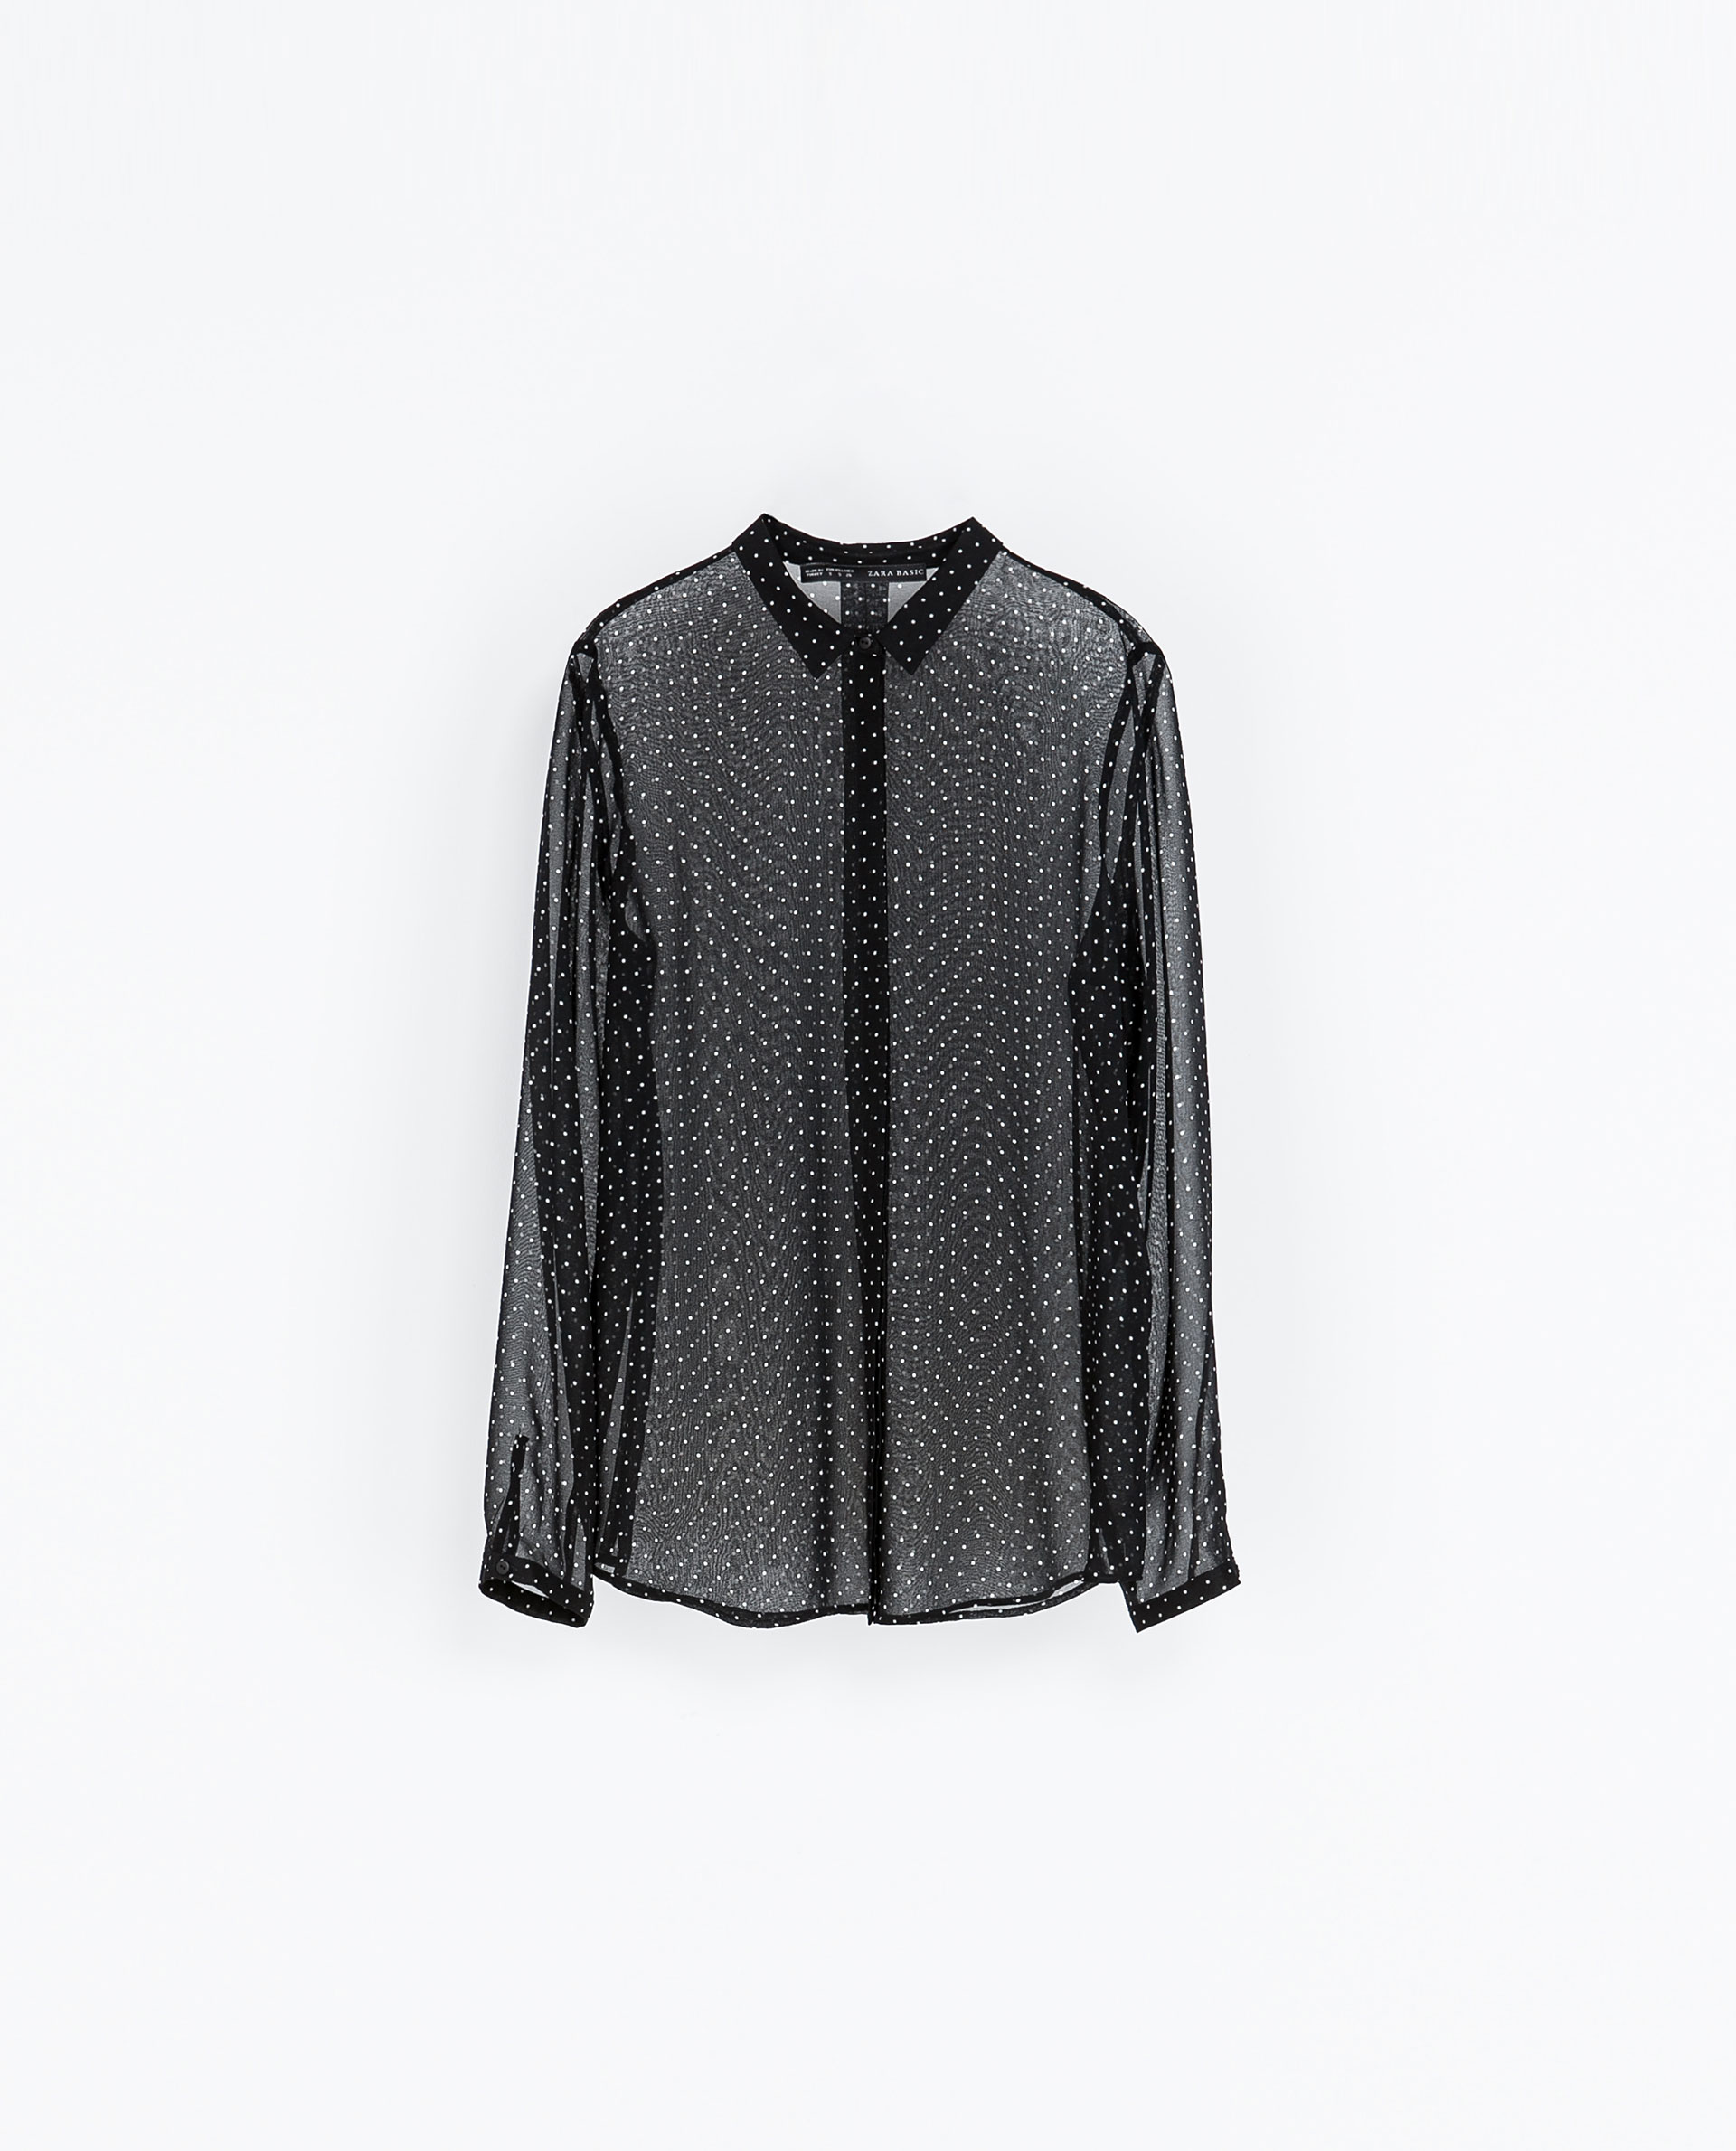 Zara Sheer Black Blouse 11